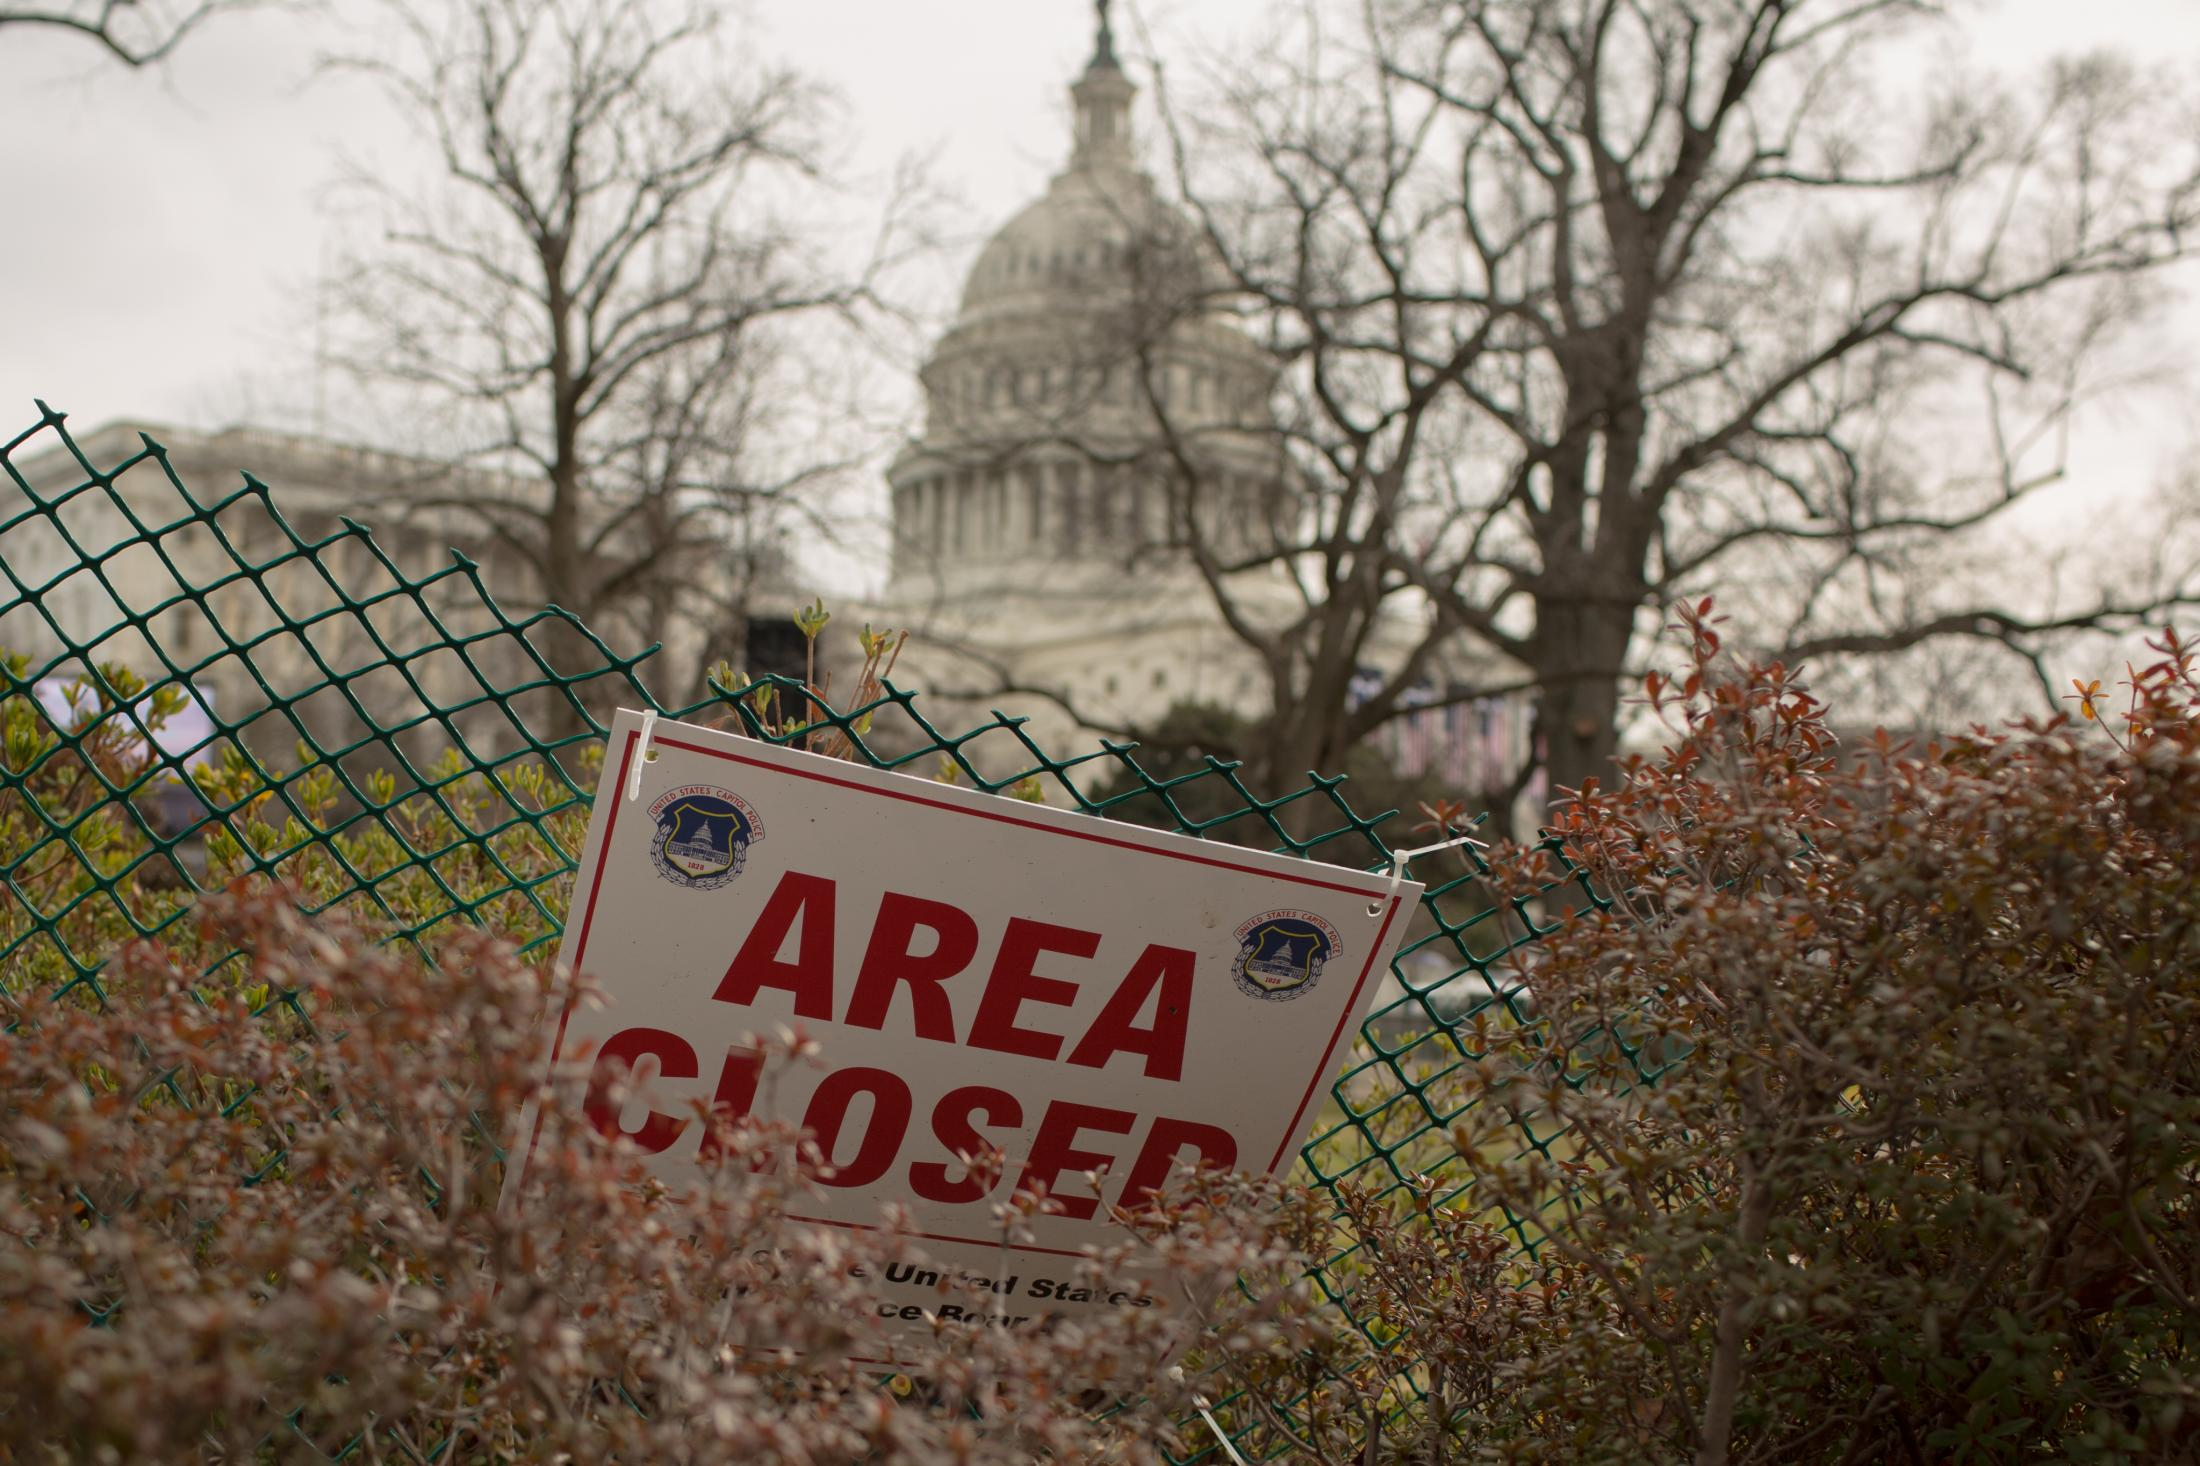 Capitol Hill in Washington, D.C. is surrounded by fencing before Donald Trump's inauguration on January 16, 2017.